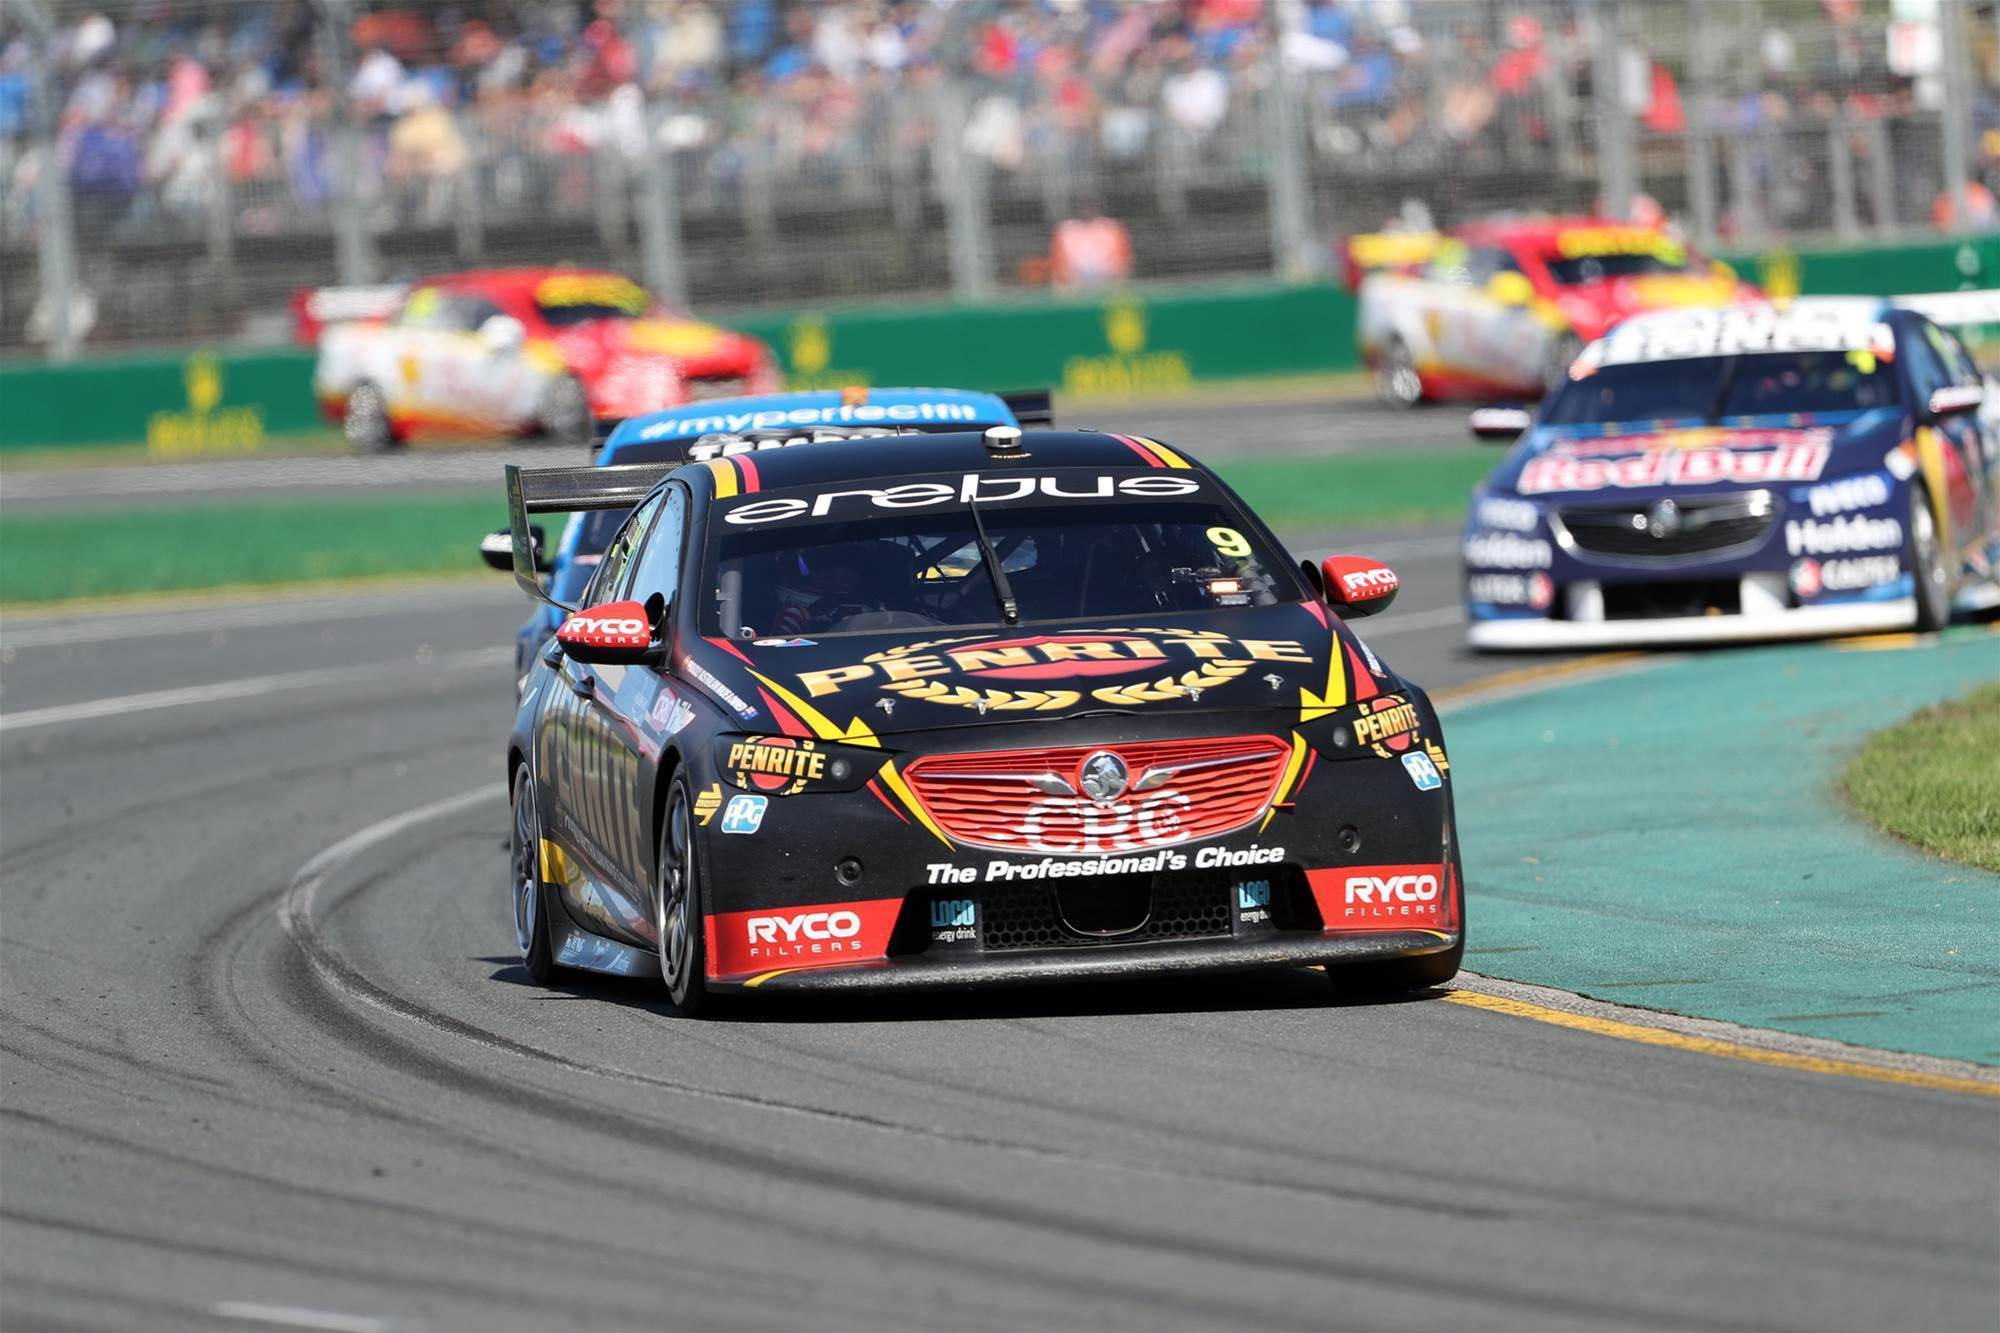 Reynolds, Pye prevail at Albert Park